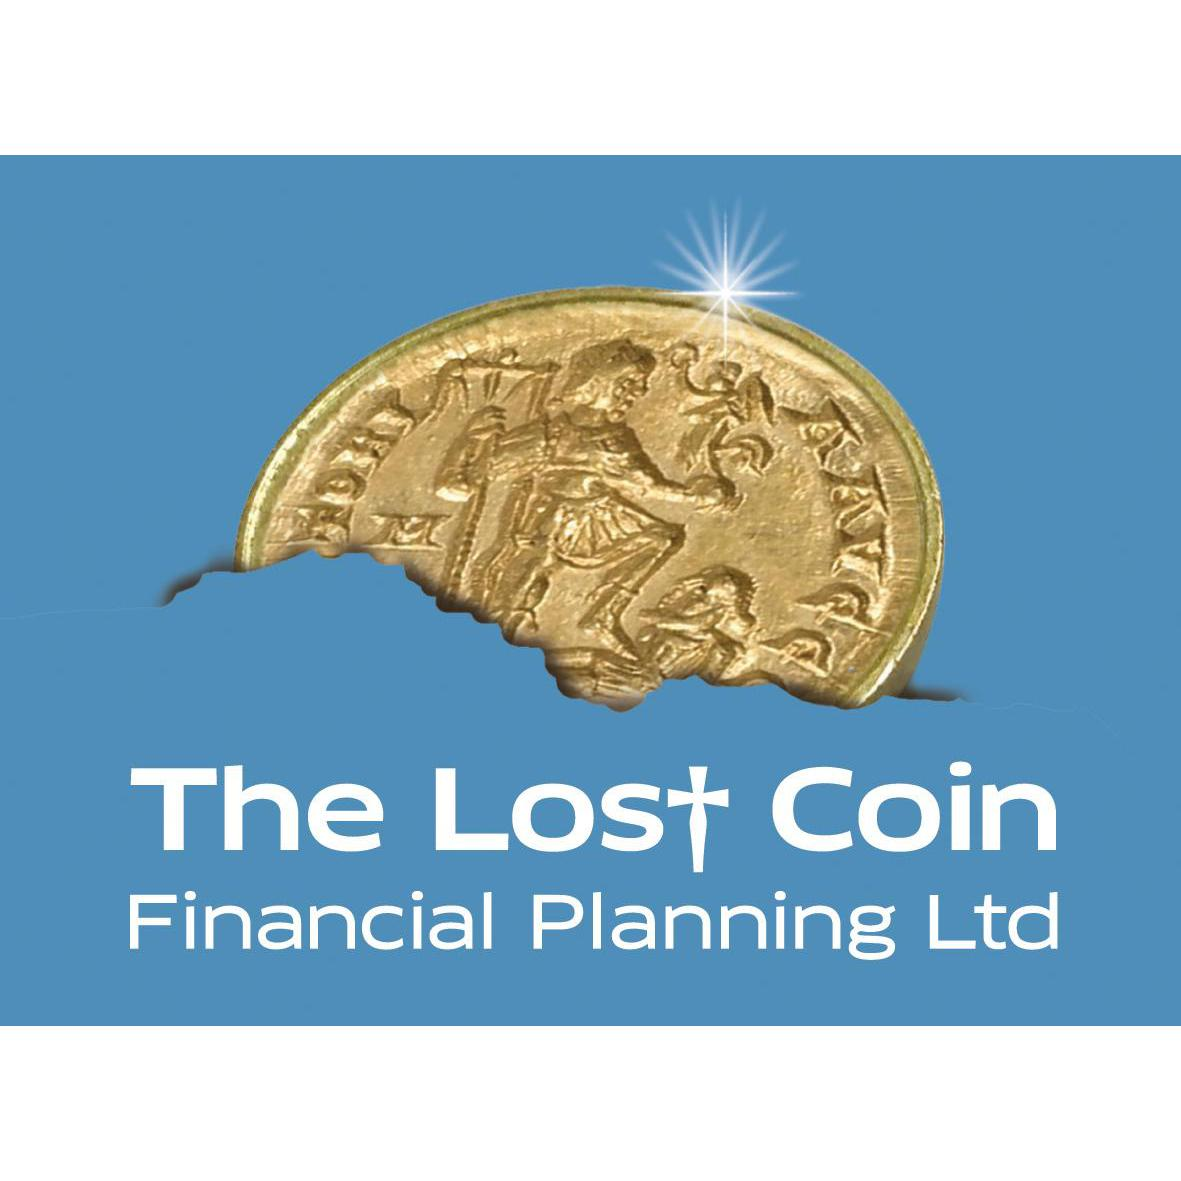 The Lost Coin Financial Planning Ltd Logo